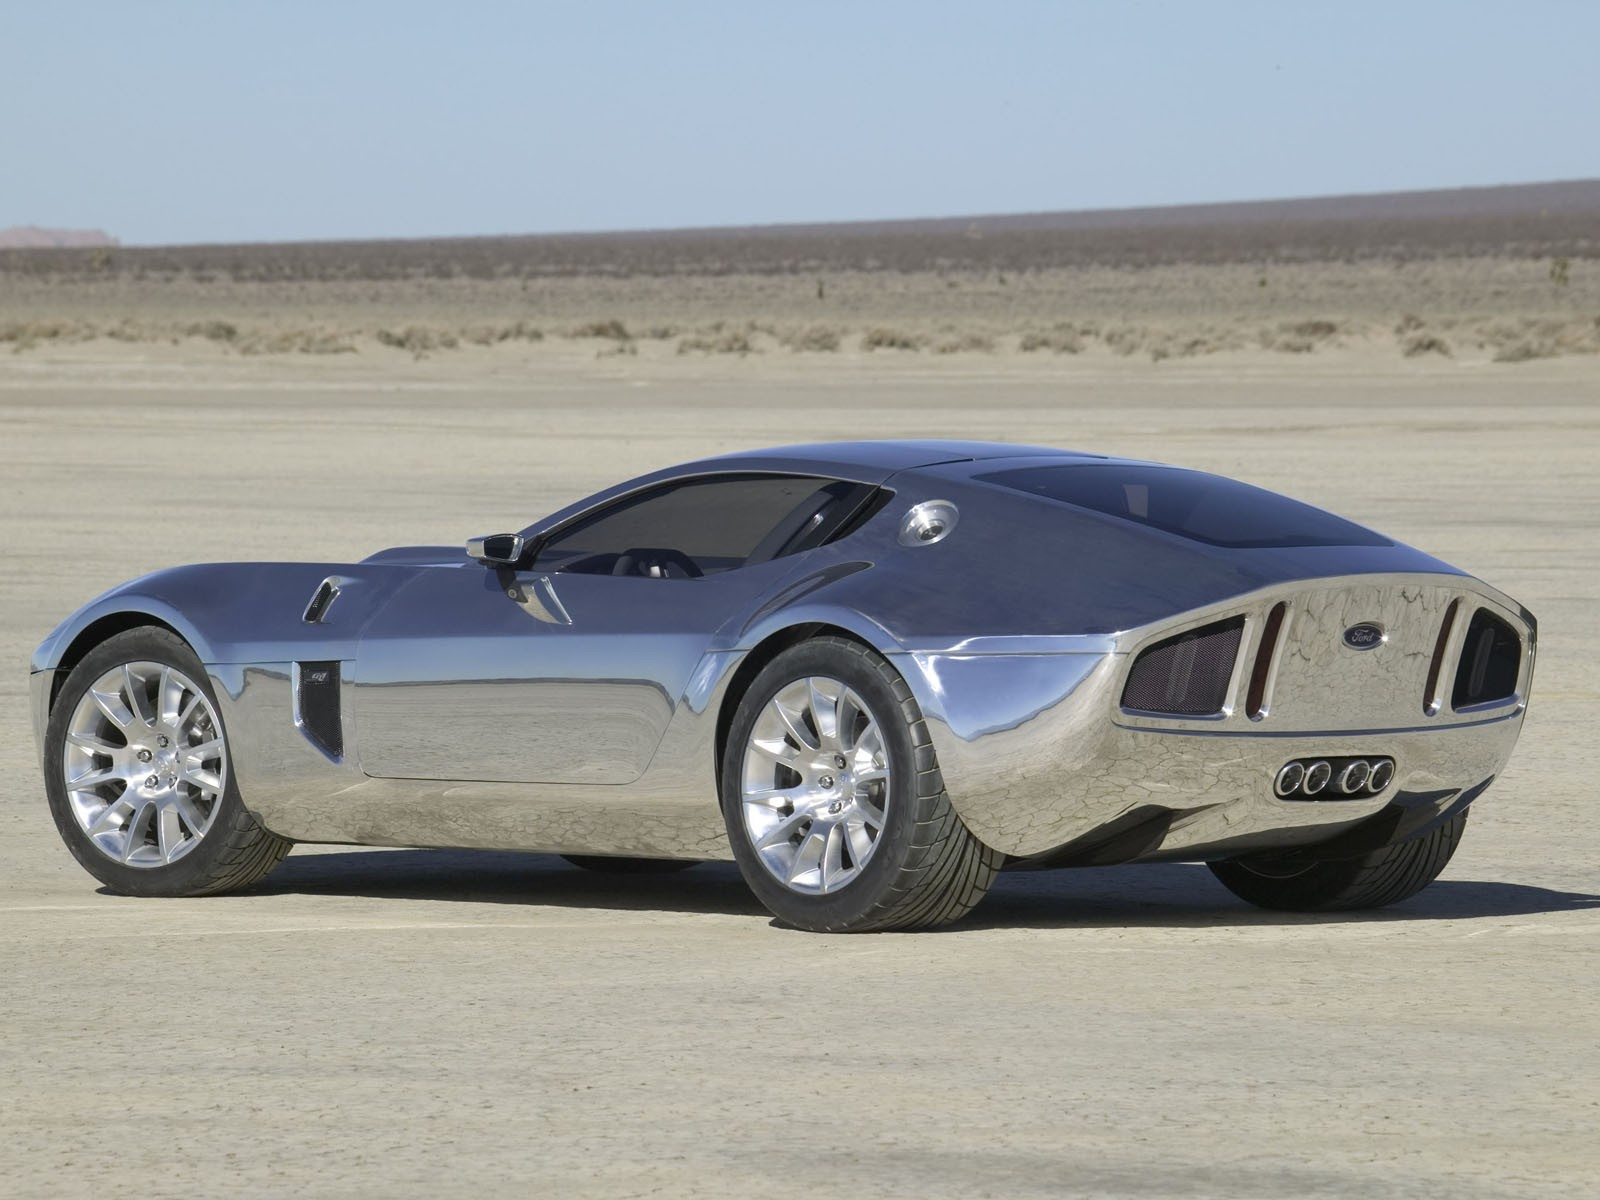 2019 Ford Shelby Cobra Concept photo - 6